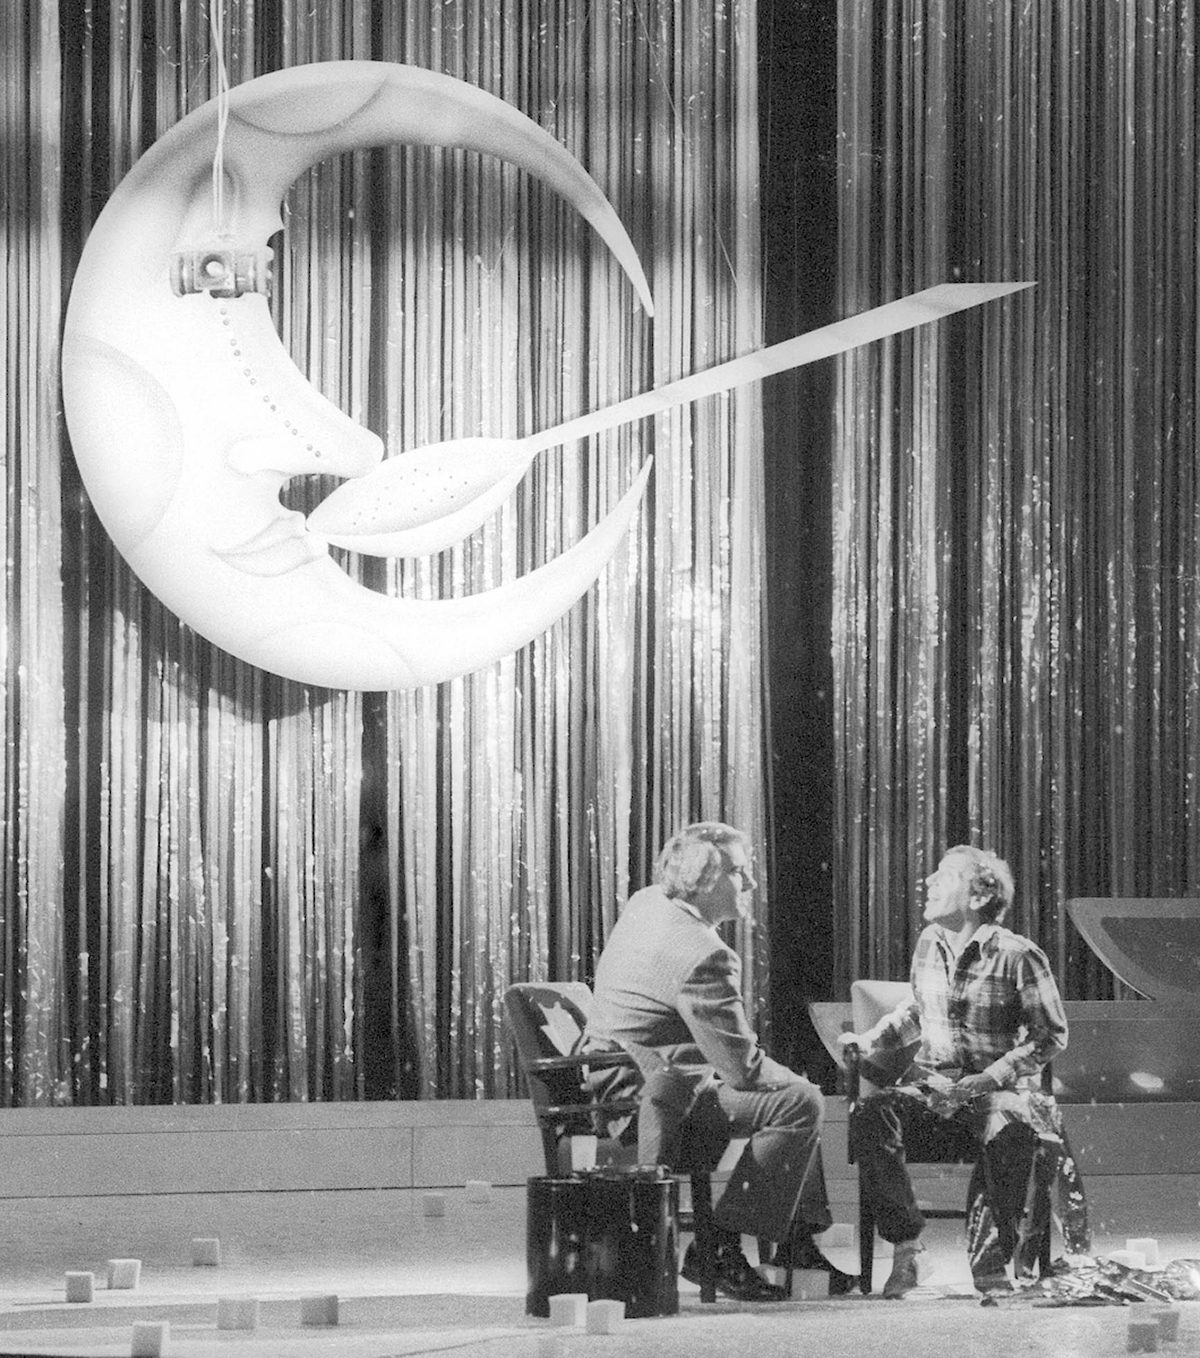 Image of Moon and Spoon at Studio 54